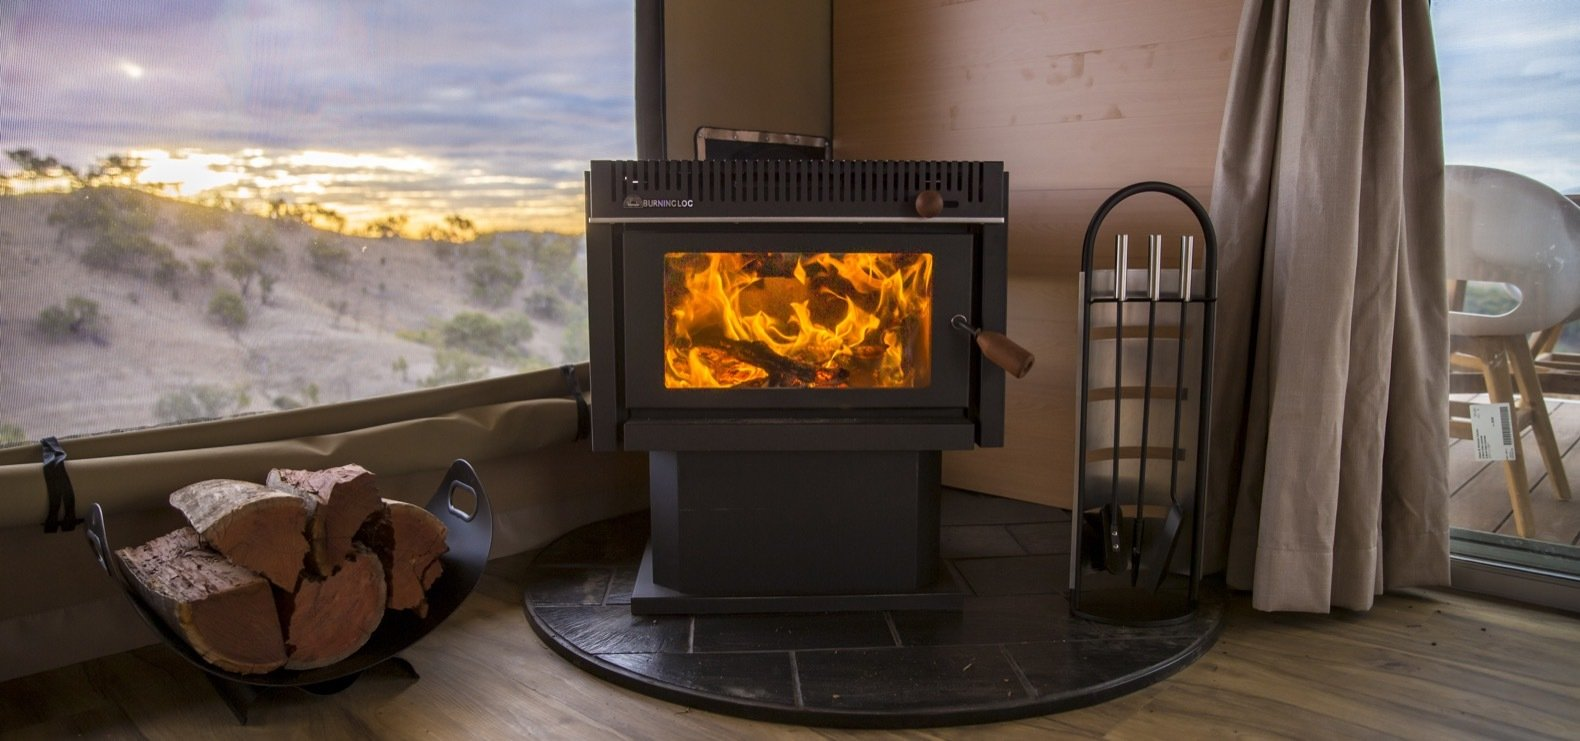 Living Room, Medium Hardwood Floor, and Wood Burning Fireplace In addition to a spacious bath, Dulili also features a designer kitchen, a wood-burning fireplace, screened windows, and a fire pit.  Photo 7 of 11 in Escape to the Australian Bush in Style With These Eco-Friendly, Luxe Tents